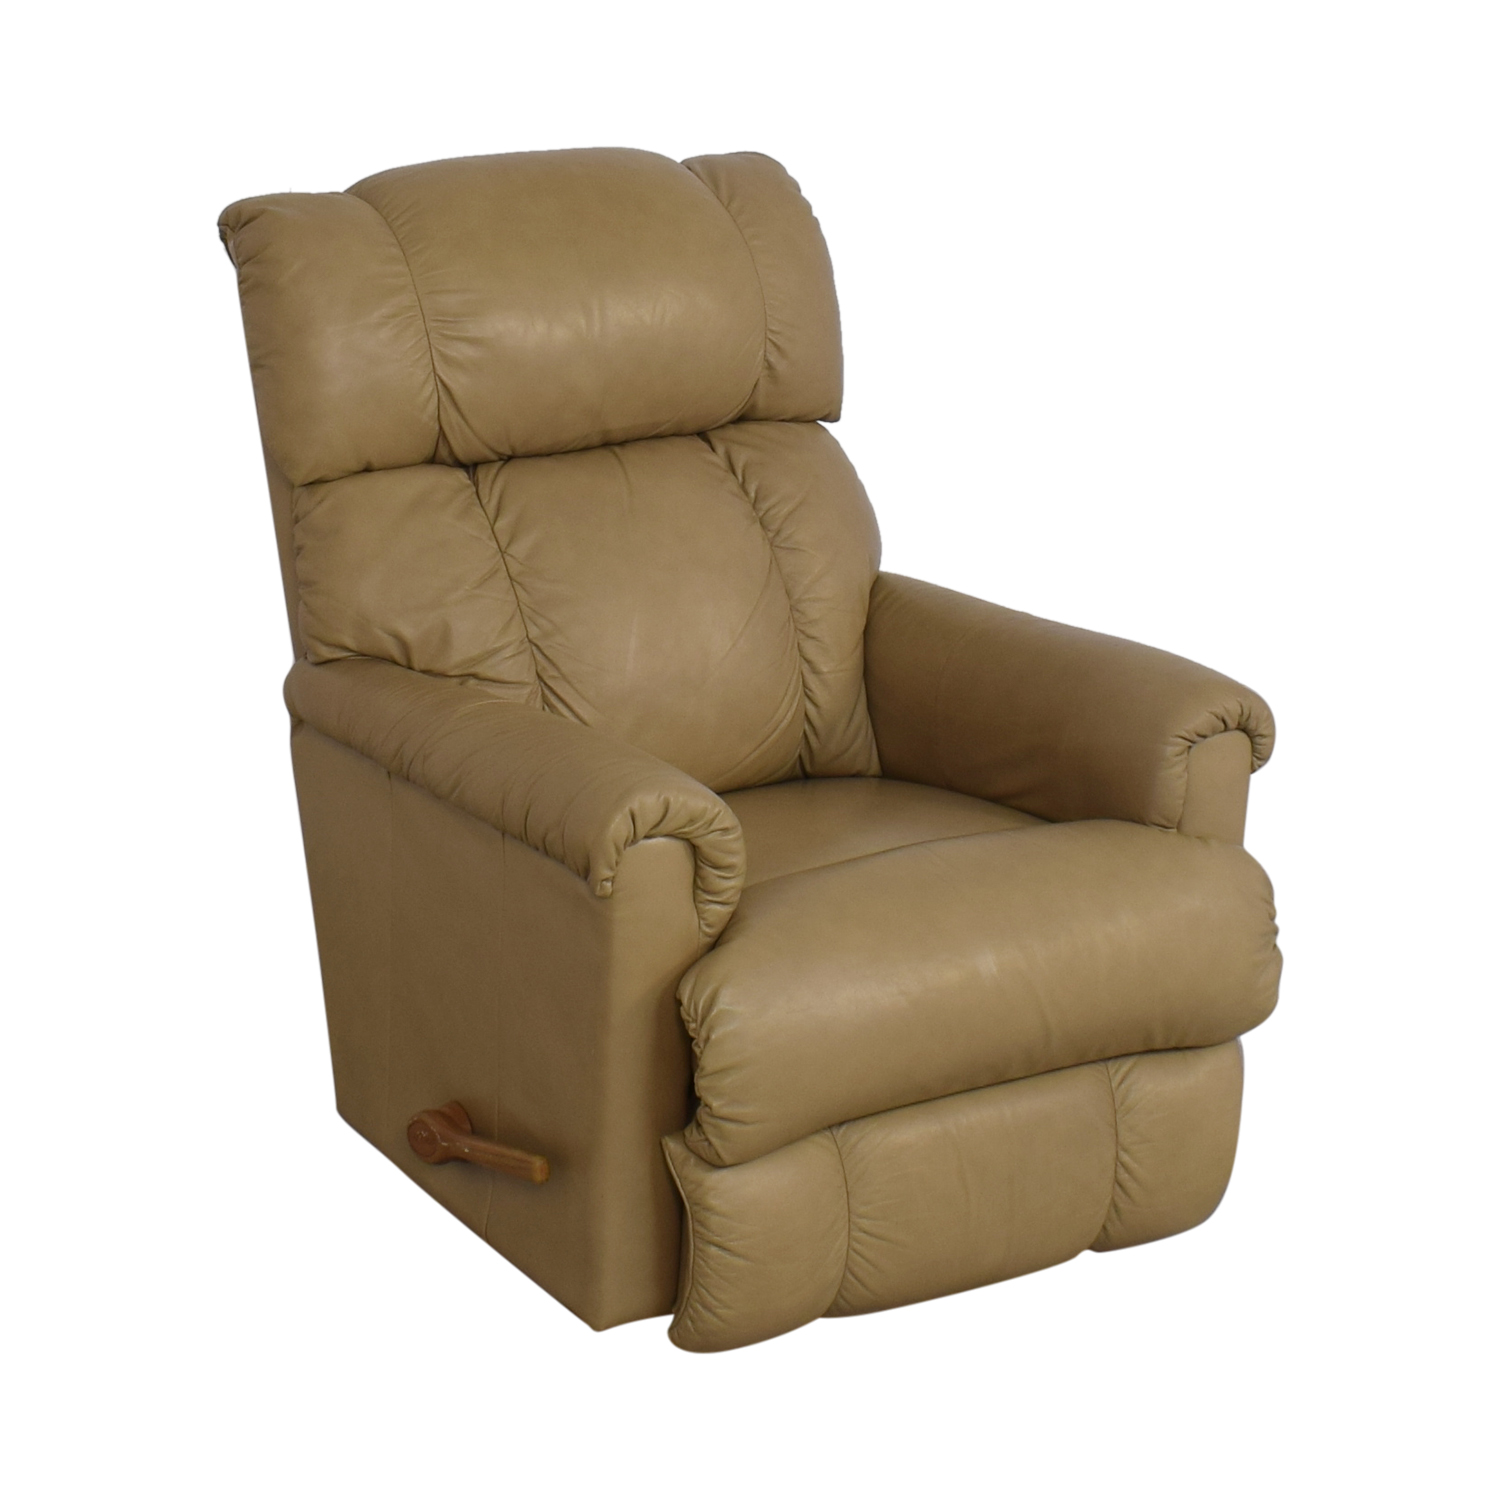 La-Z-Boy Recliner sale